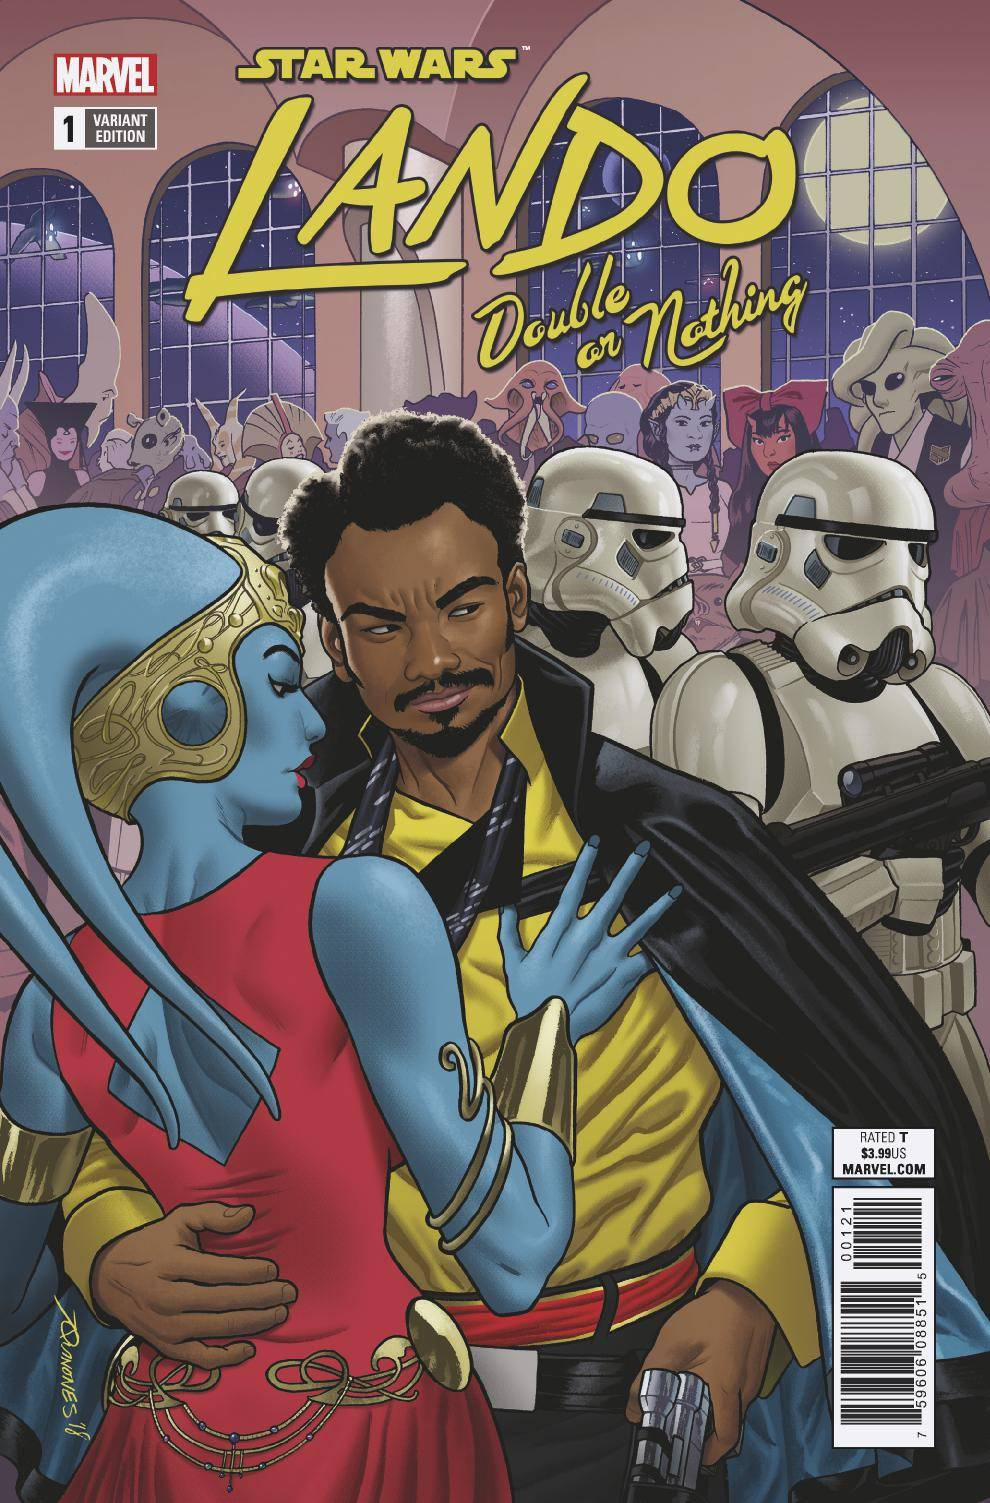 STAR WARS LANDO DOUBLE OR NOTHING 1 of 5 QUINONES VAR.jpg